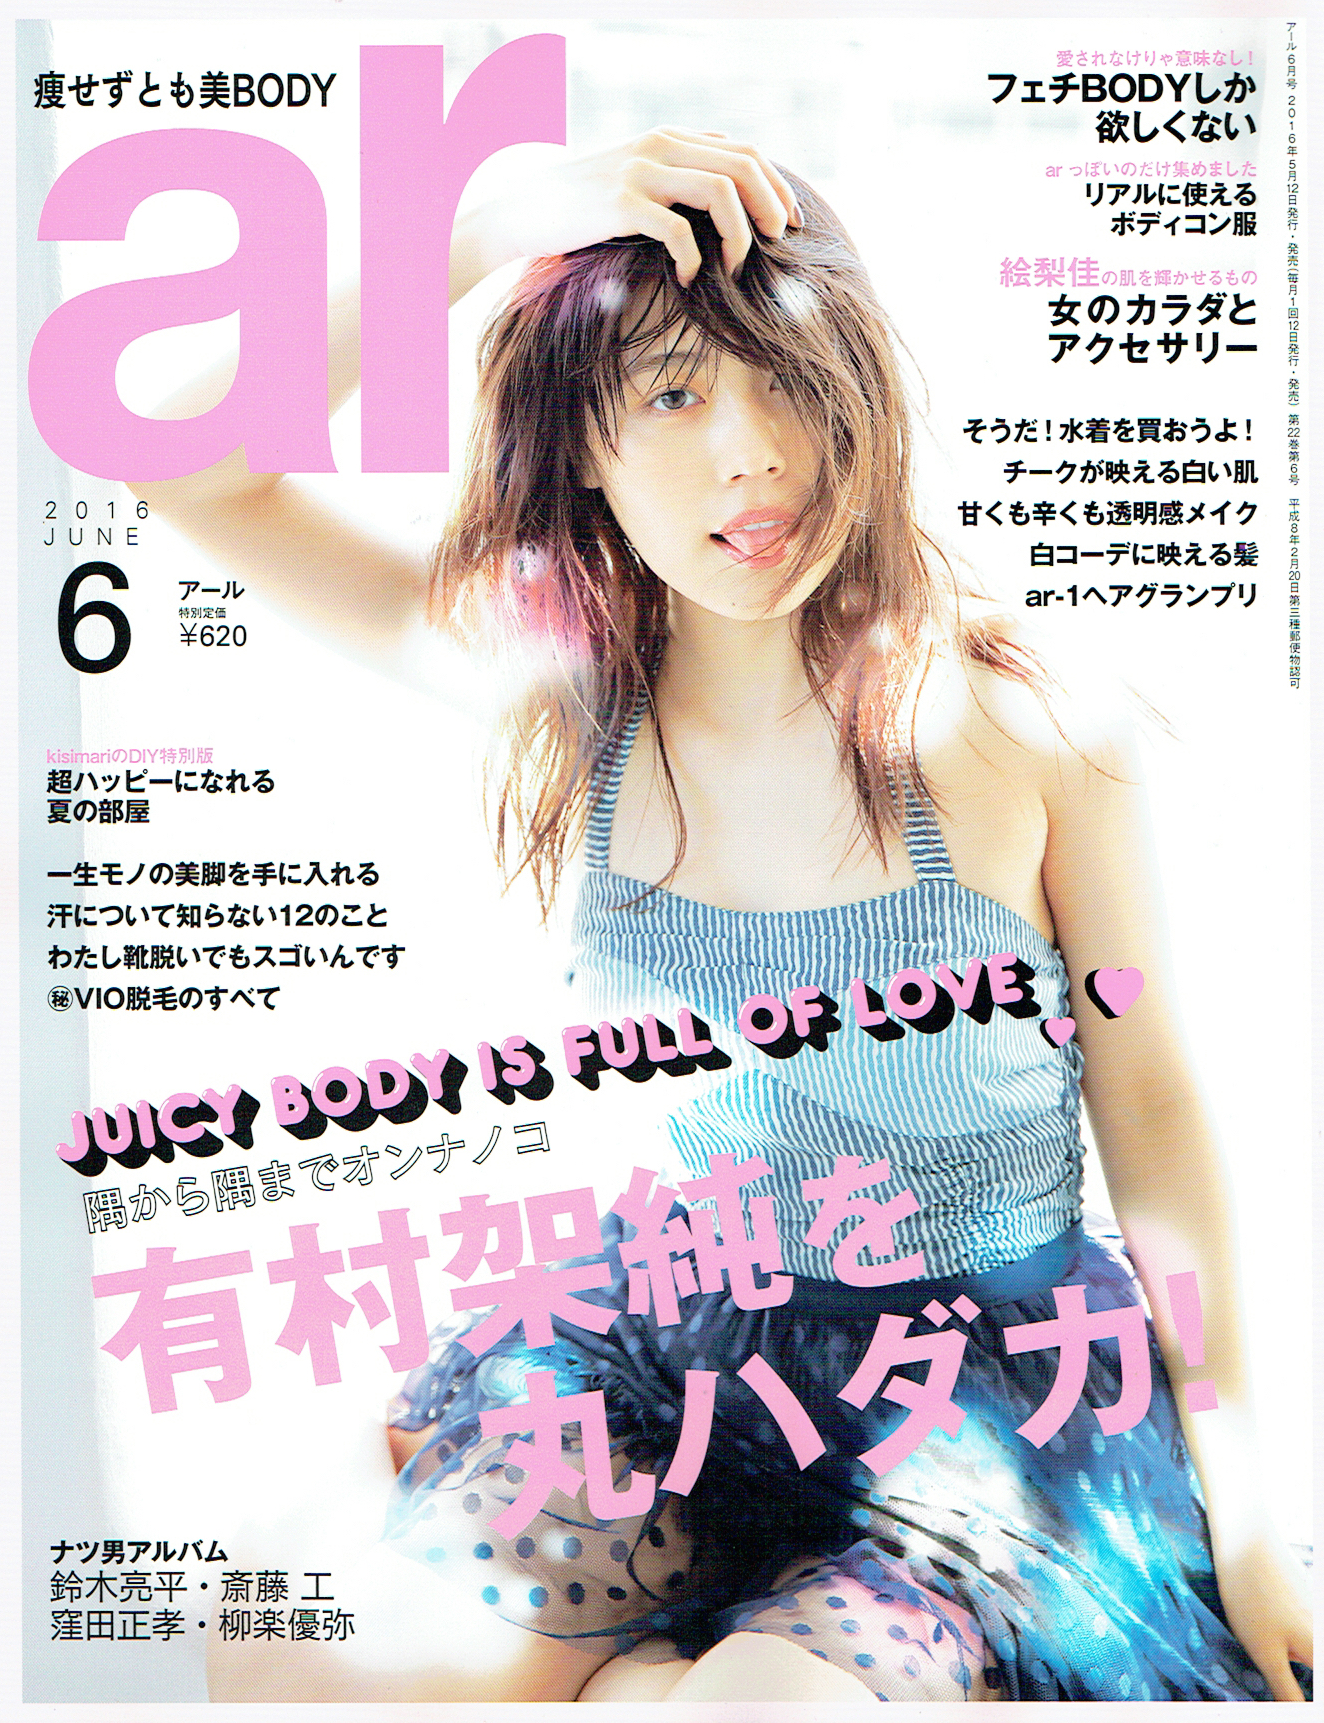 AR Magazine, June 2016, Juicy Body is Full of Love issue